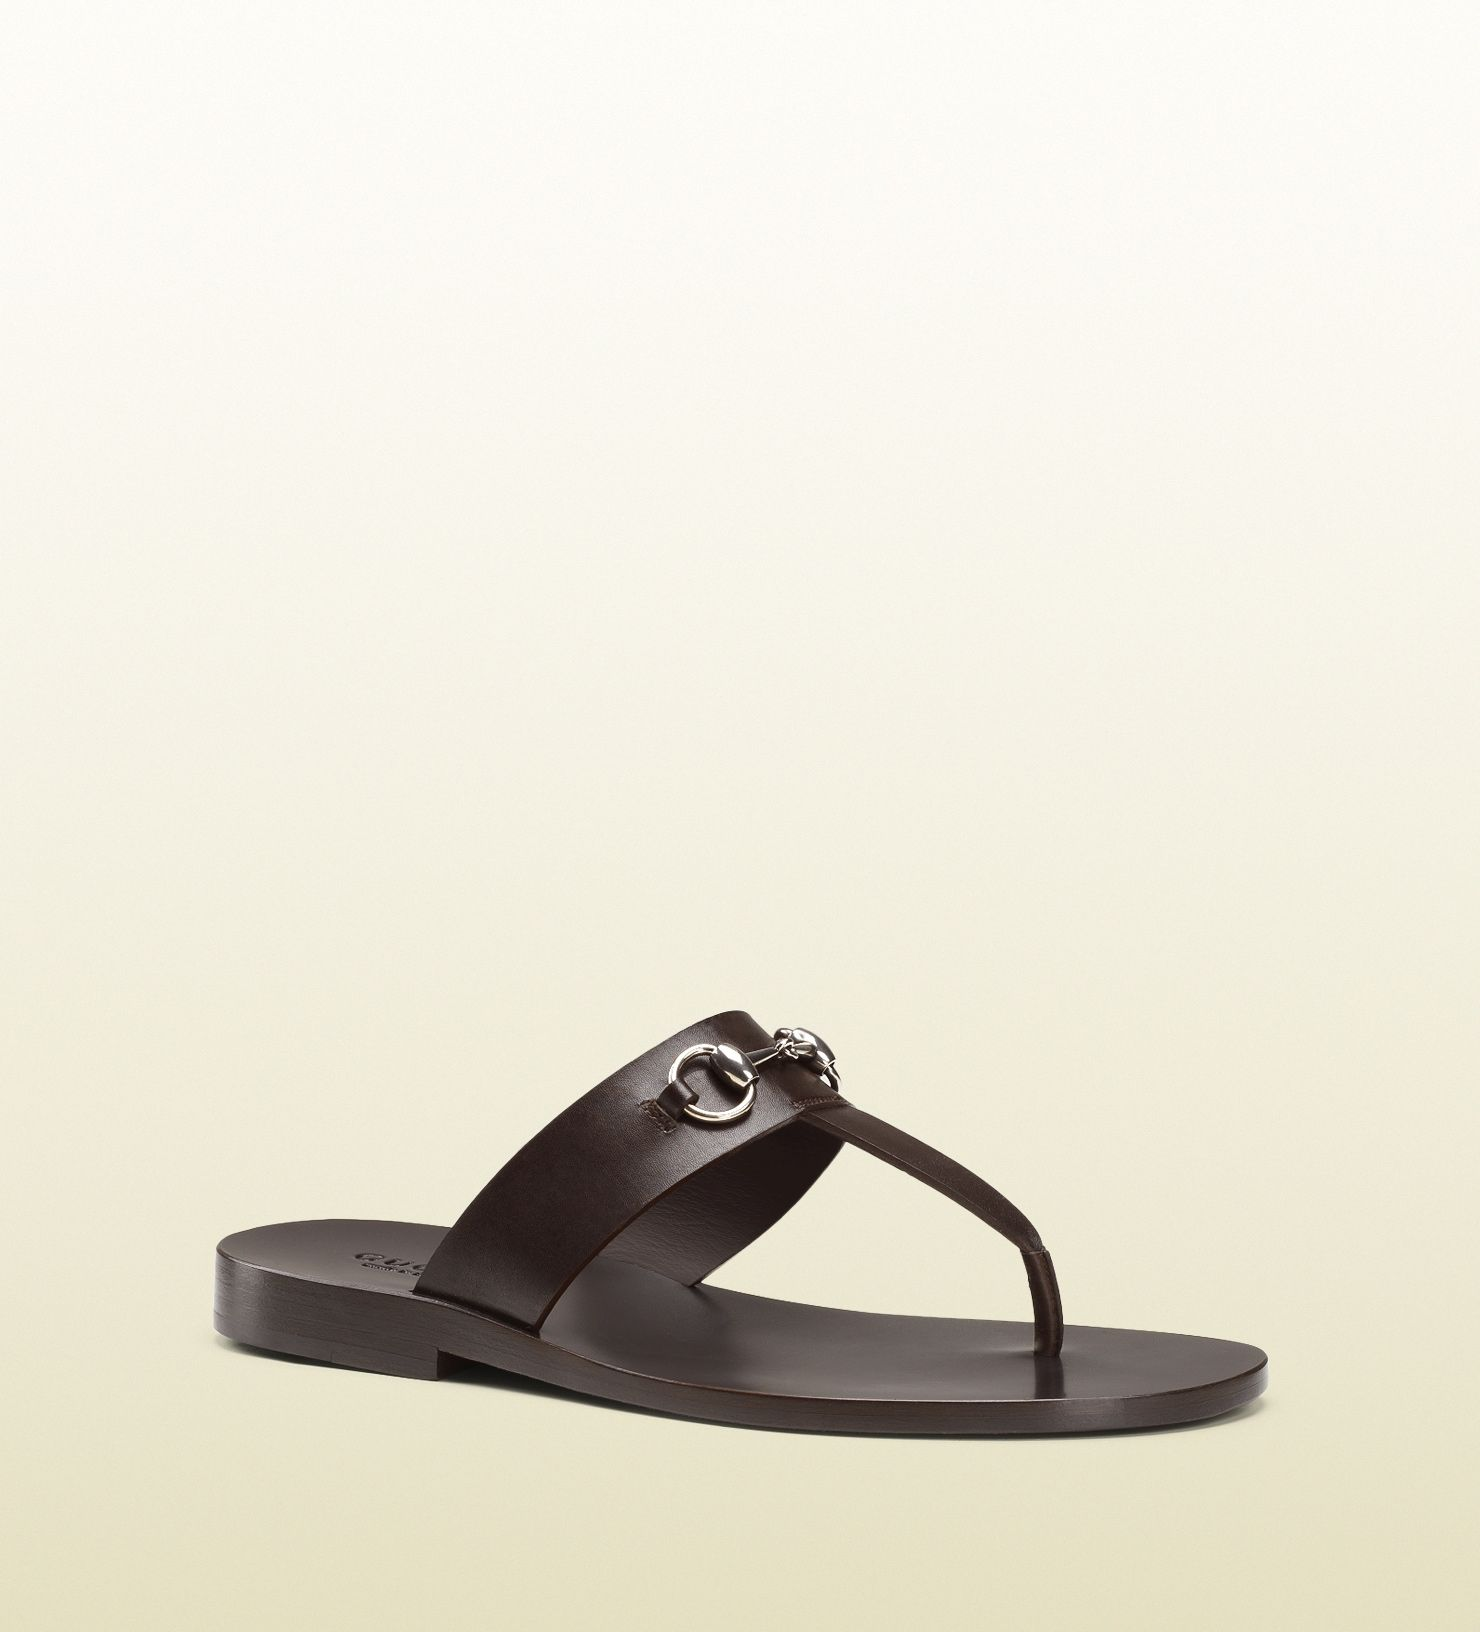 00636d493 Gucci - 337062 A4HD0 2140 - leather horsebit thong sandal - dark brown  leather Made in Italy horsebit detail leather sole